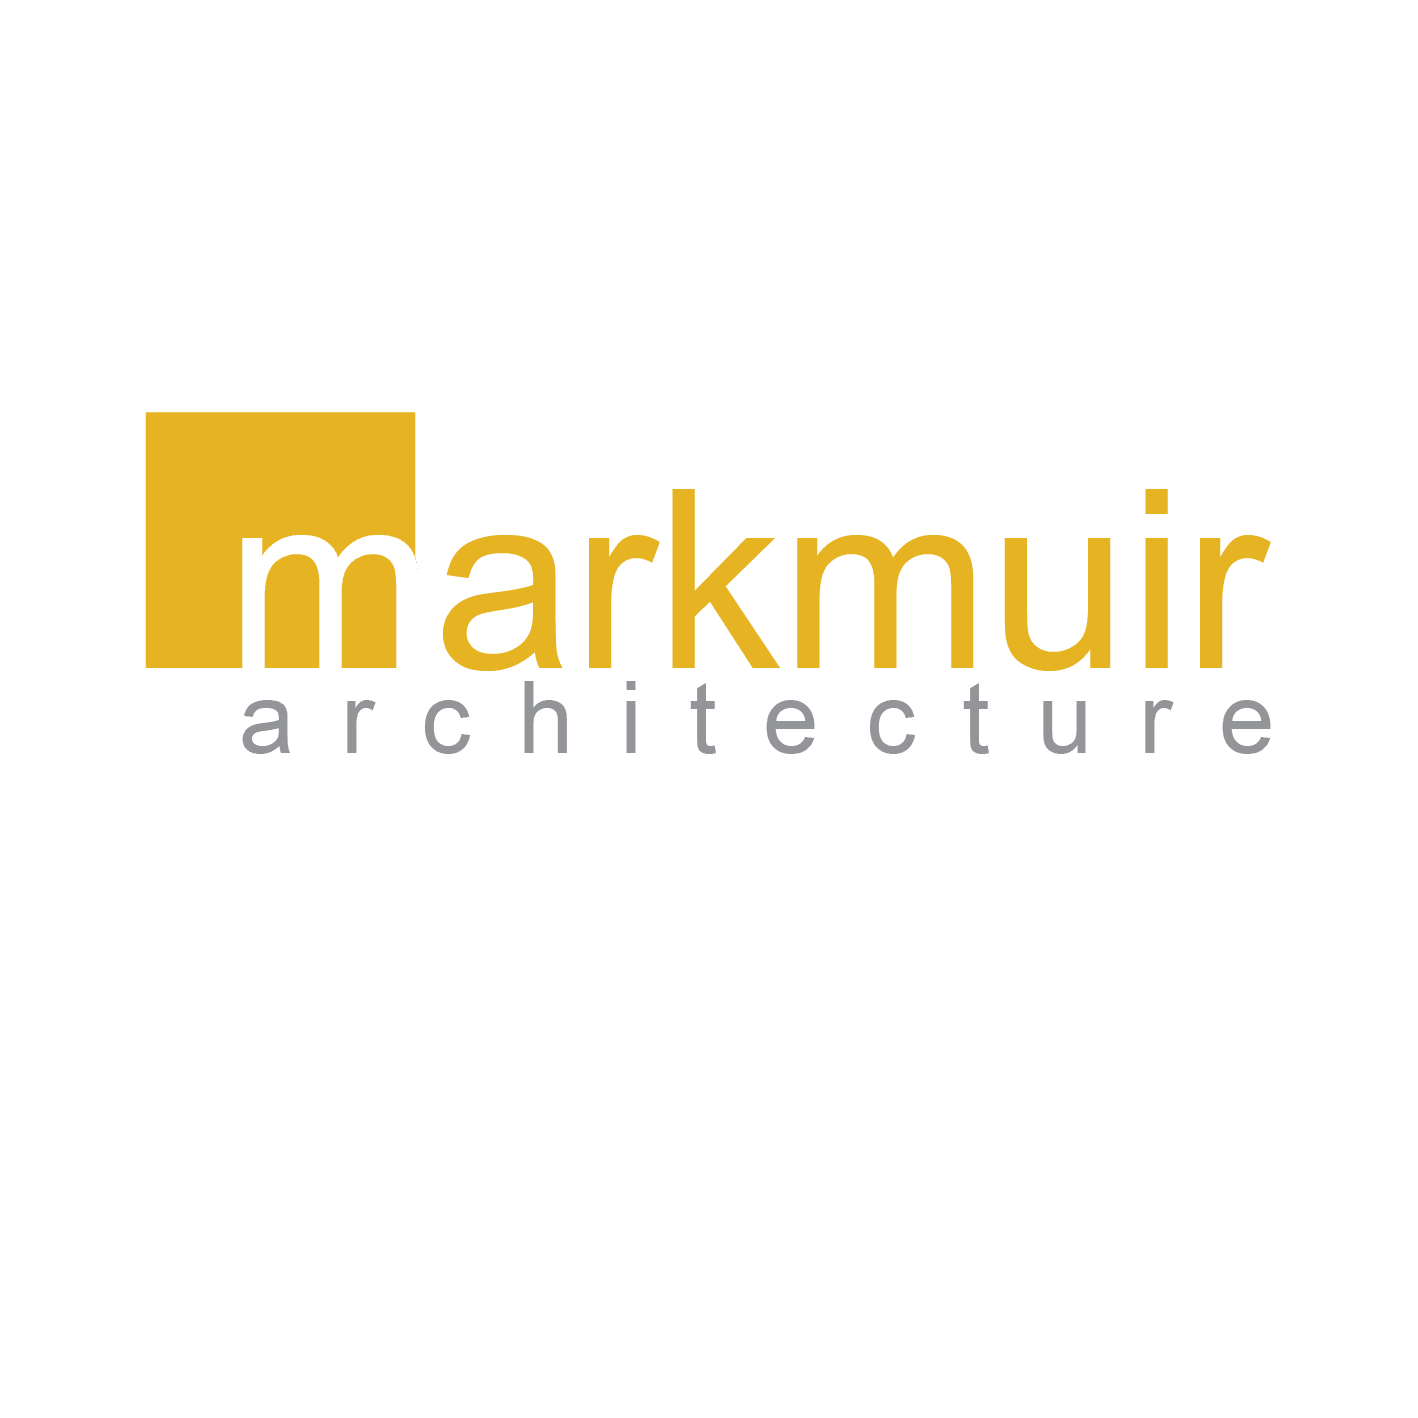 Mark Muir Architecture - Exmouth, Devon EX8 1DL - 01395 875875 | ShowMeLocal.com